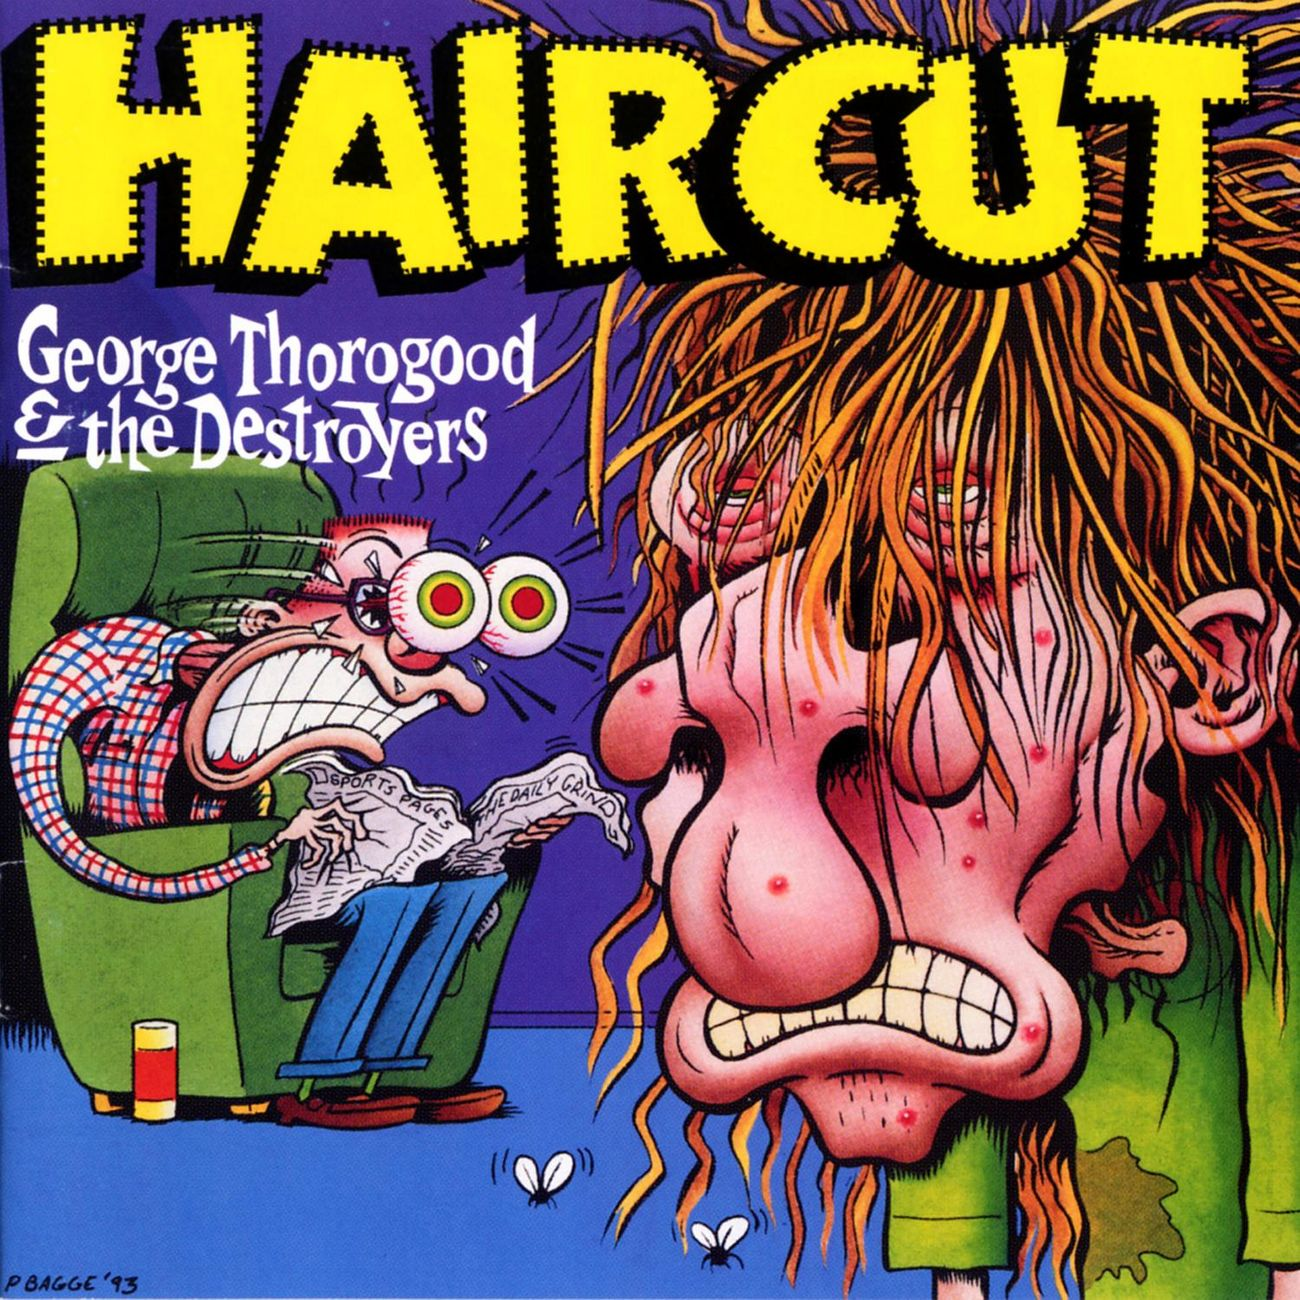 George Thorogood Haircut album cover